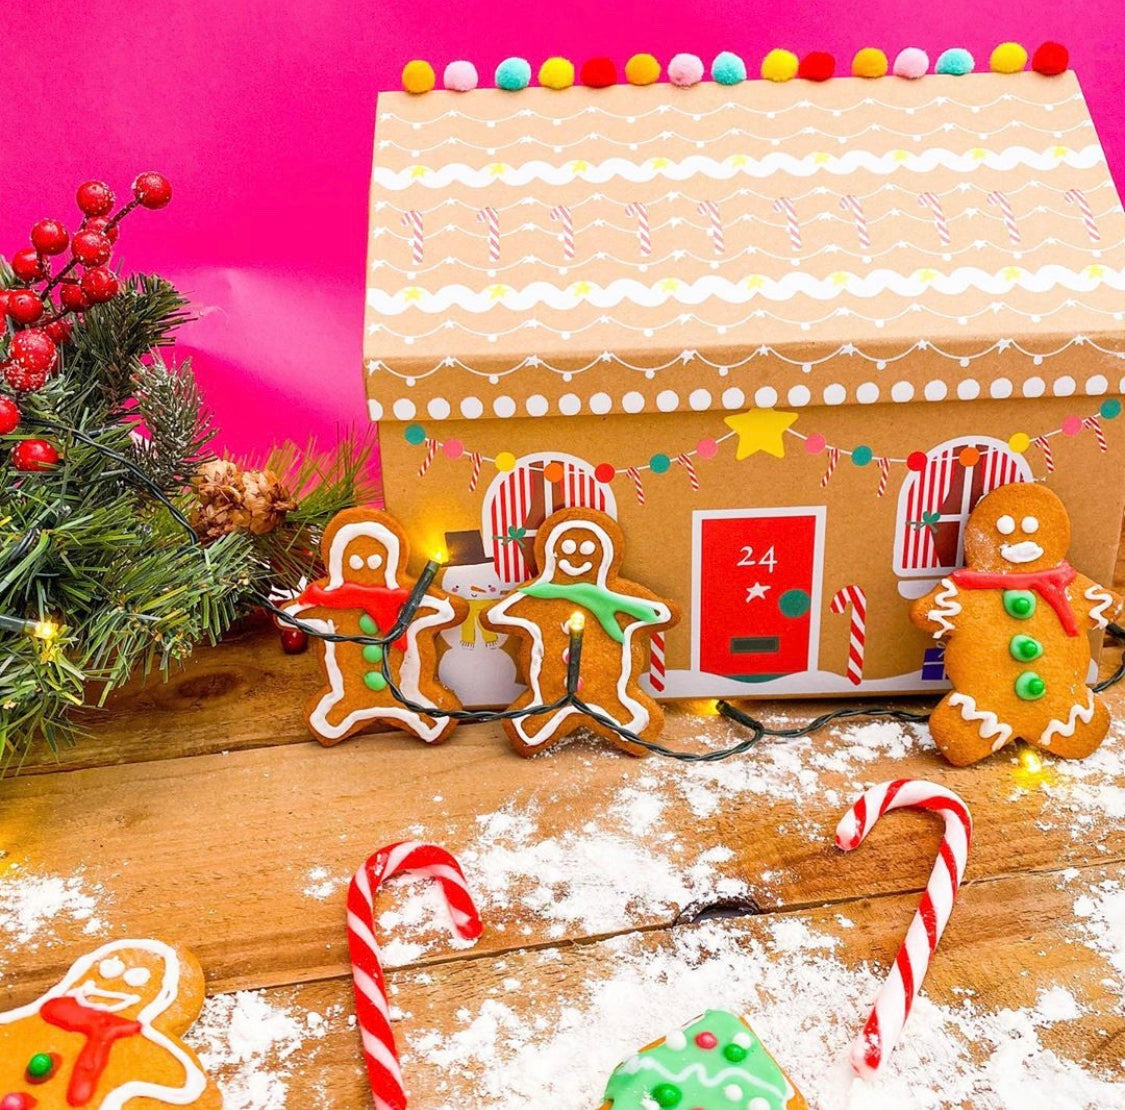 Jolly gingerbread baking kit